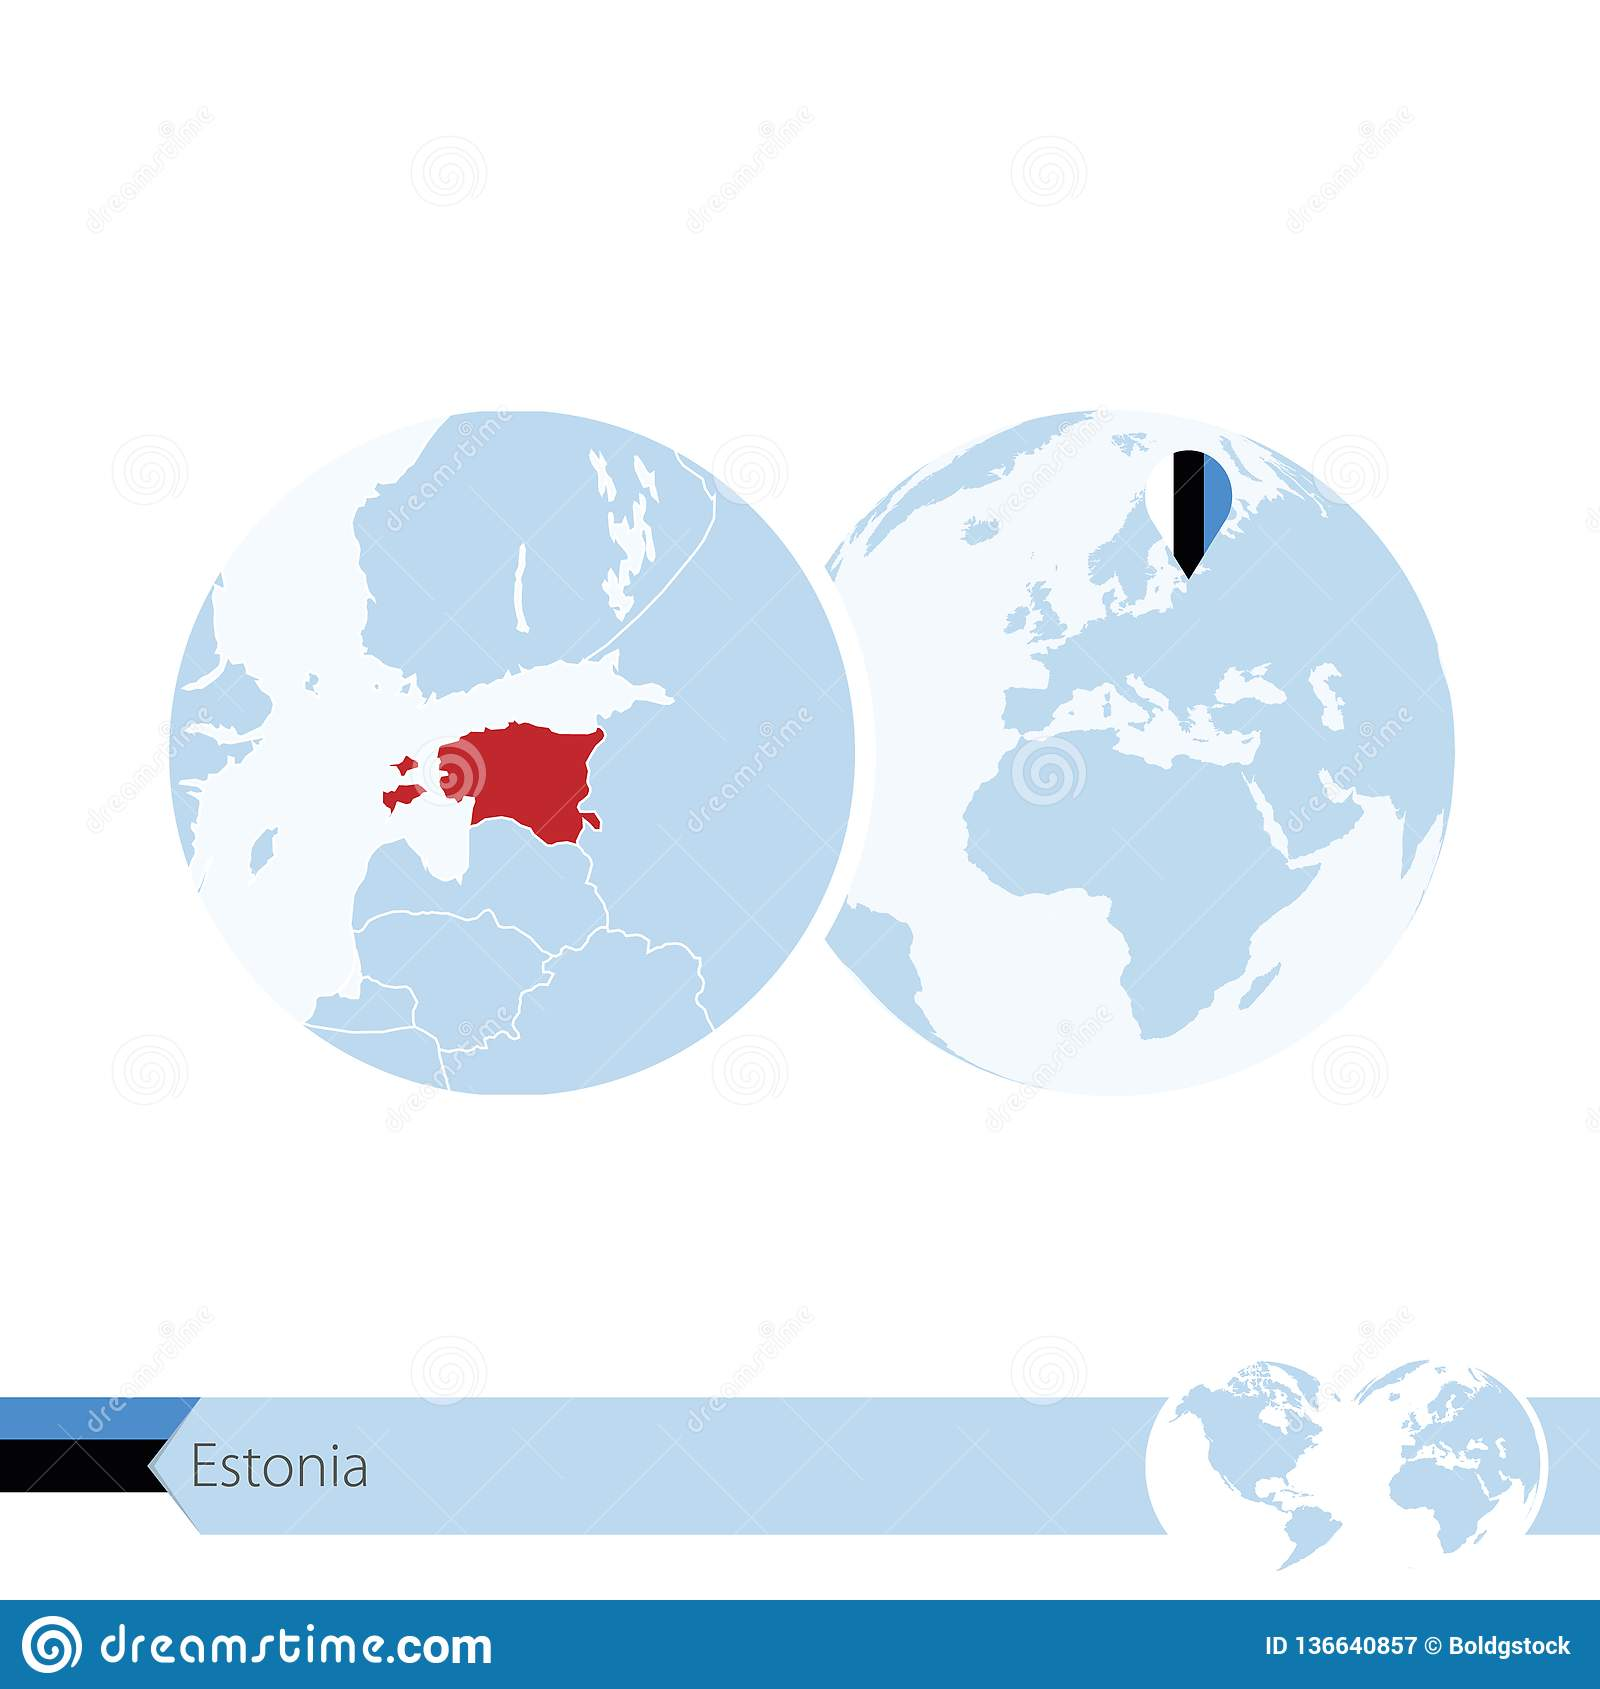 Estonia On World Globe With Flag And Regional Map Of Estonia Stock